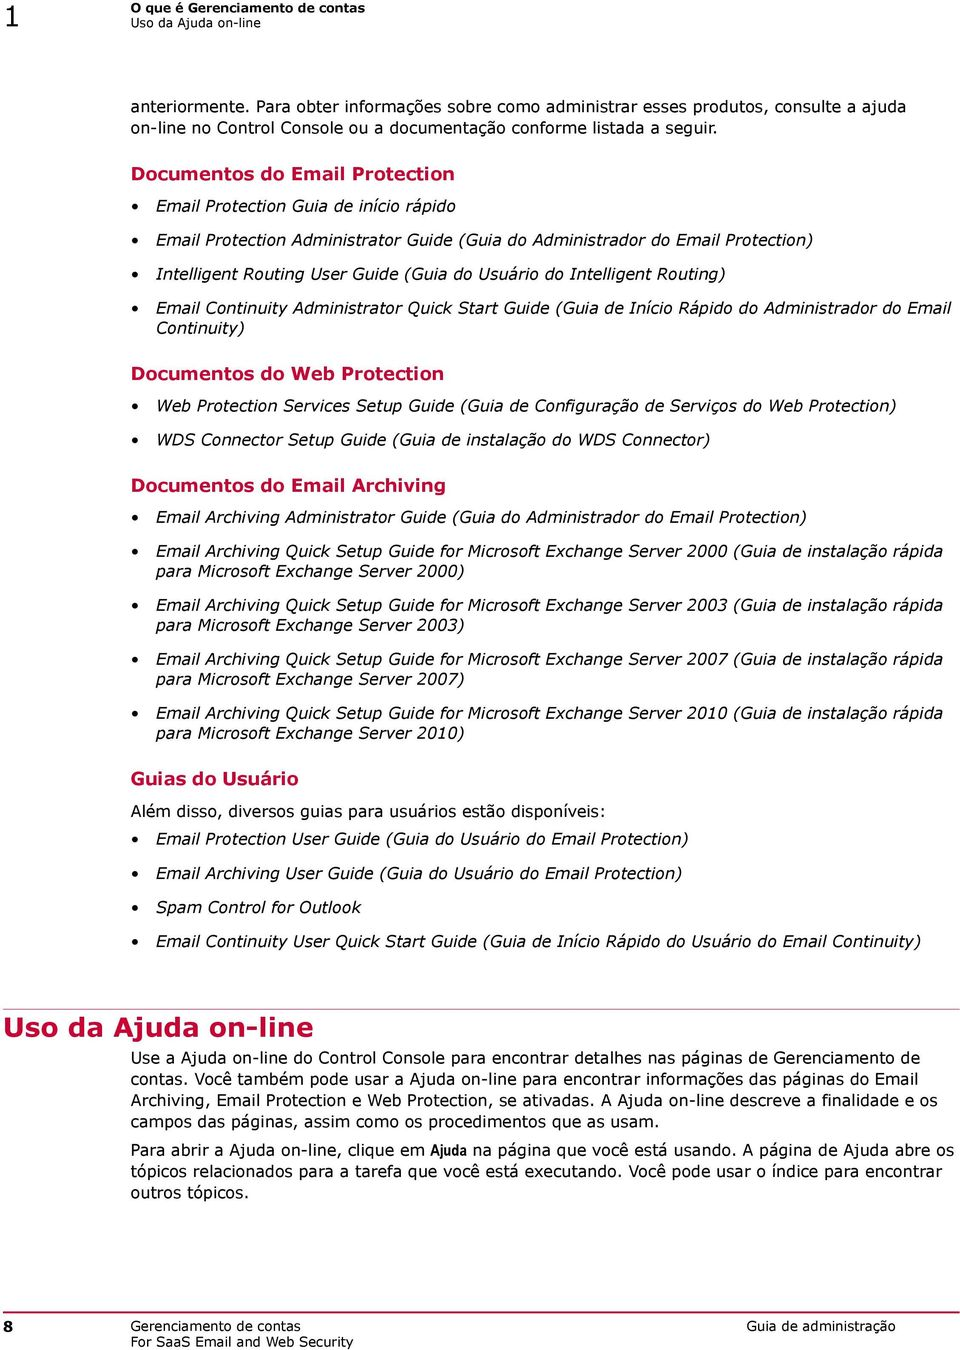 Documentos do Email Protection Email Protection Guia de início rápido Email Protection Administrator Guide (Guia do Administrador do Email Protection) Intelligent Routing User Guide (Guia do Usuário